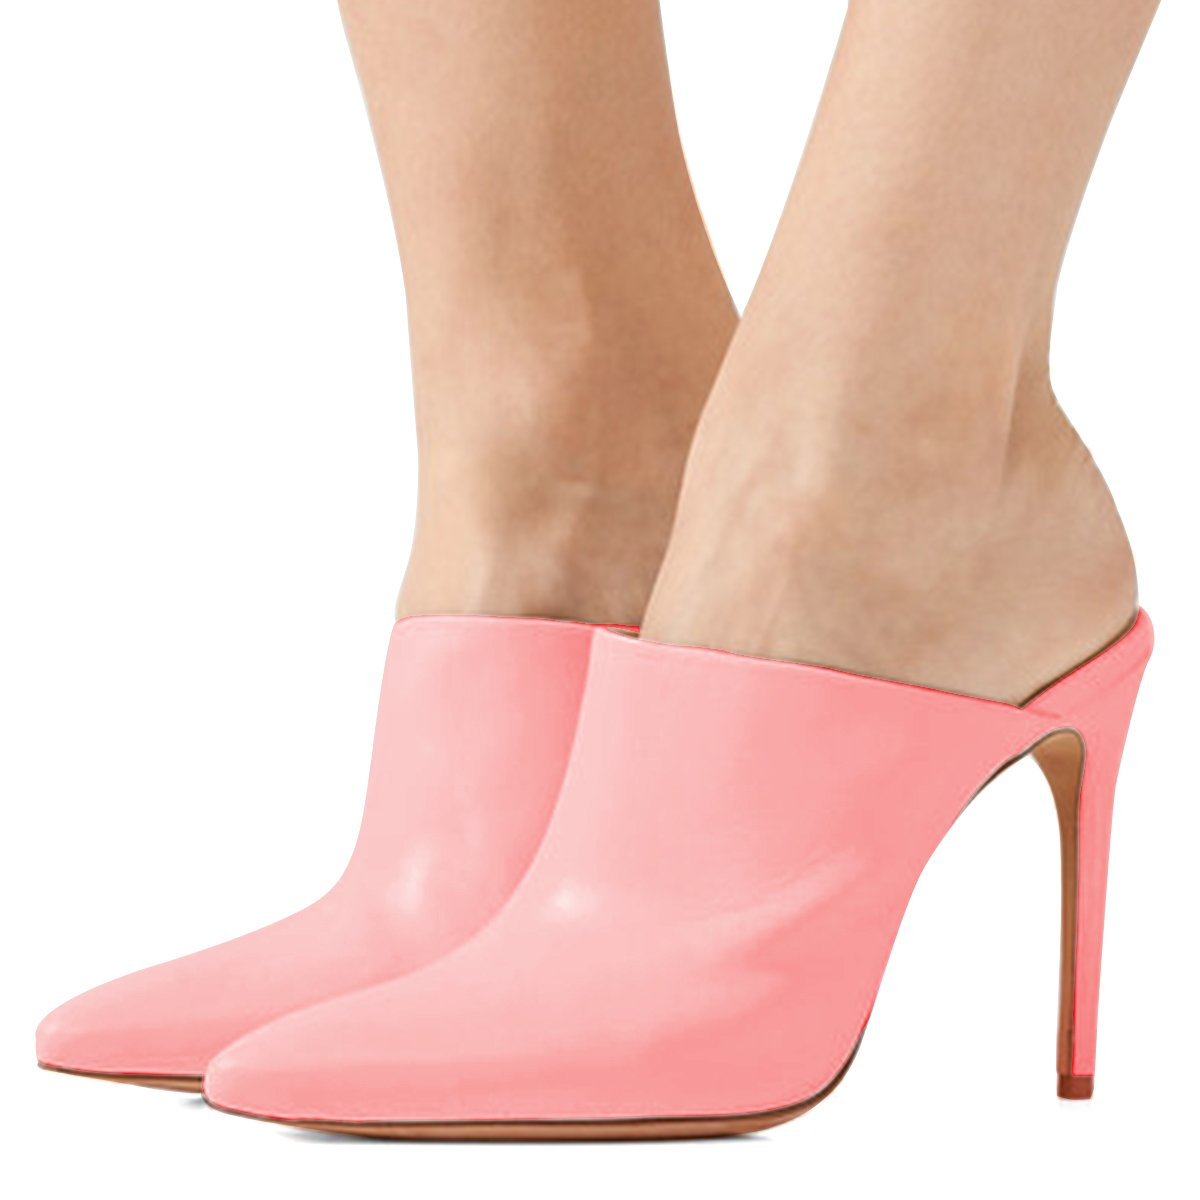 FSJ Women Slip On Closed Toe Mules Faux Suede Sandals Stiletto High Heels Classic Shoes Size 10 Pink